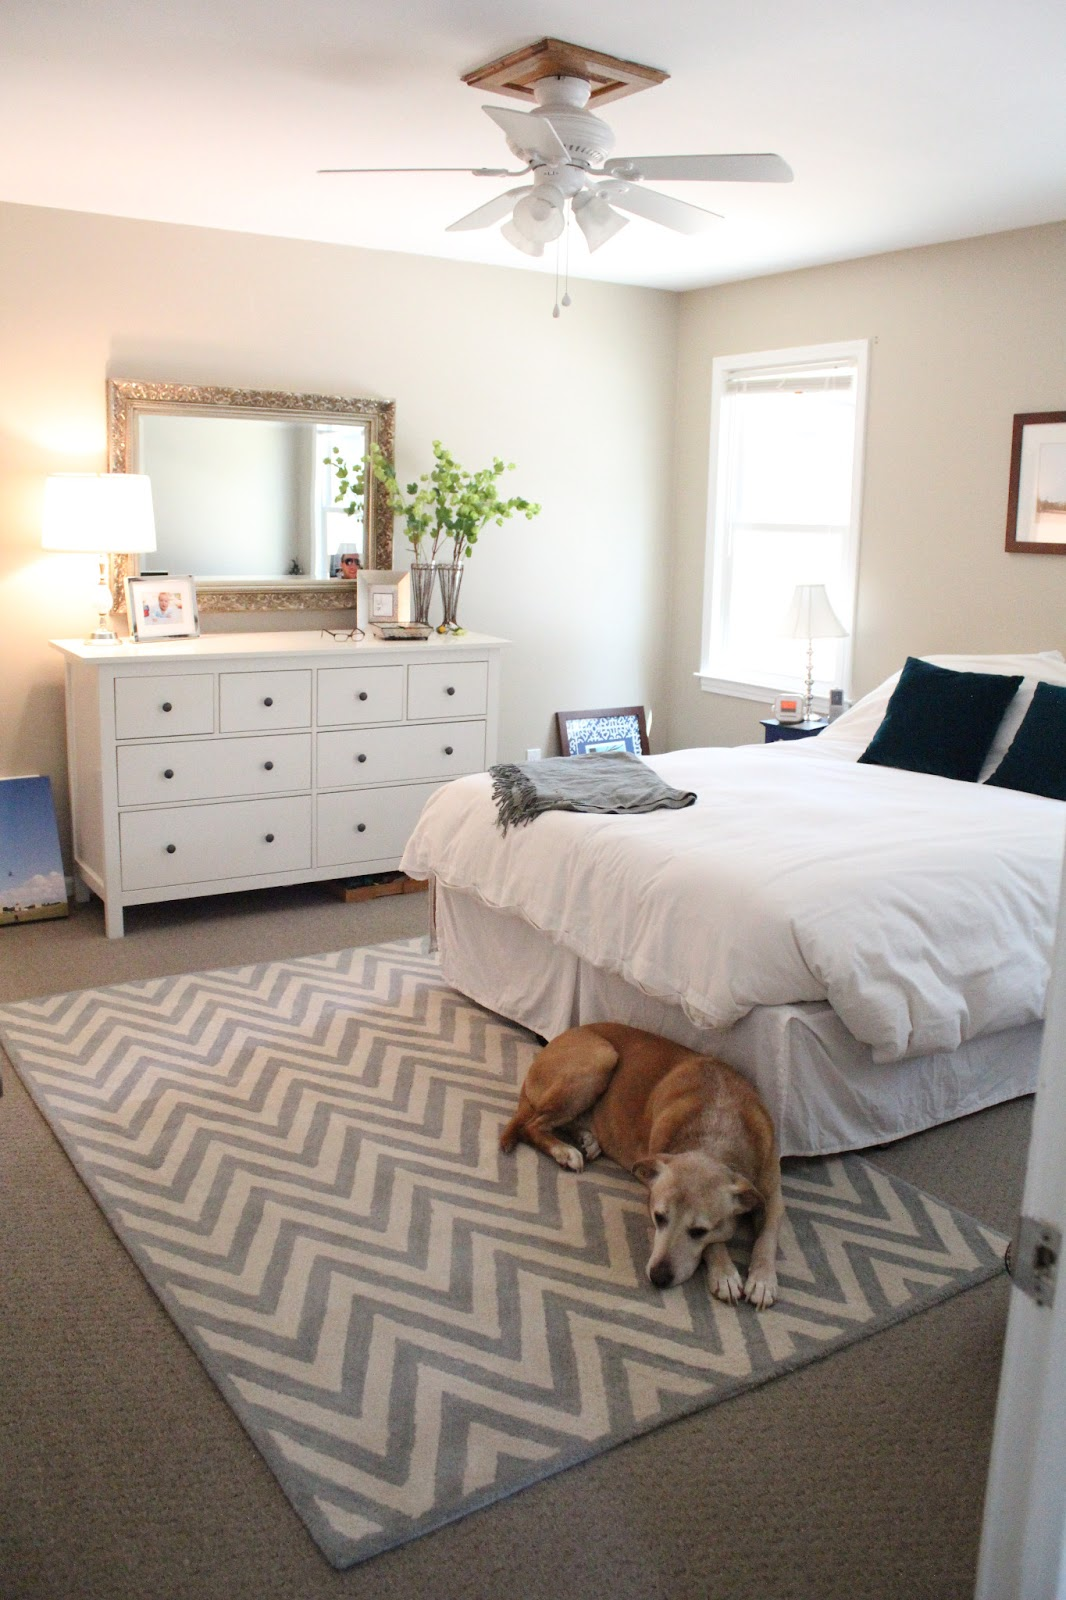 Master Bedroom Rug: Ten June: Our Rental House: A Master Bedroom Tour